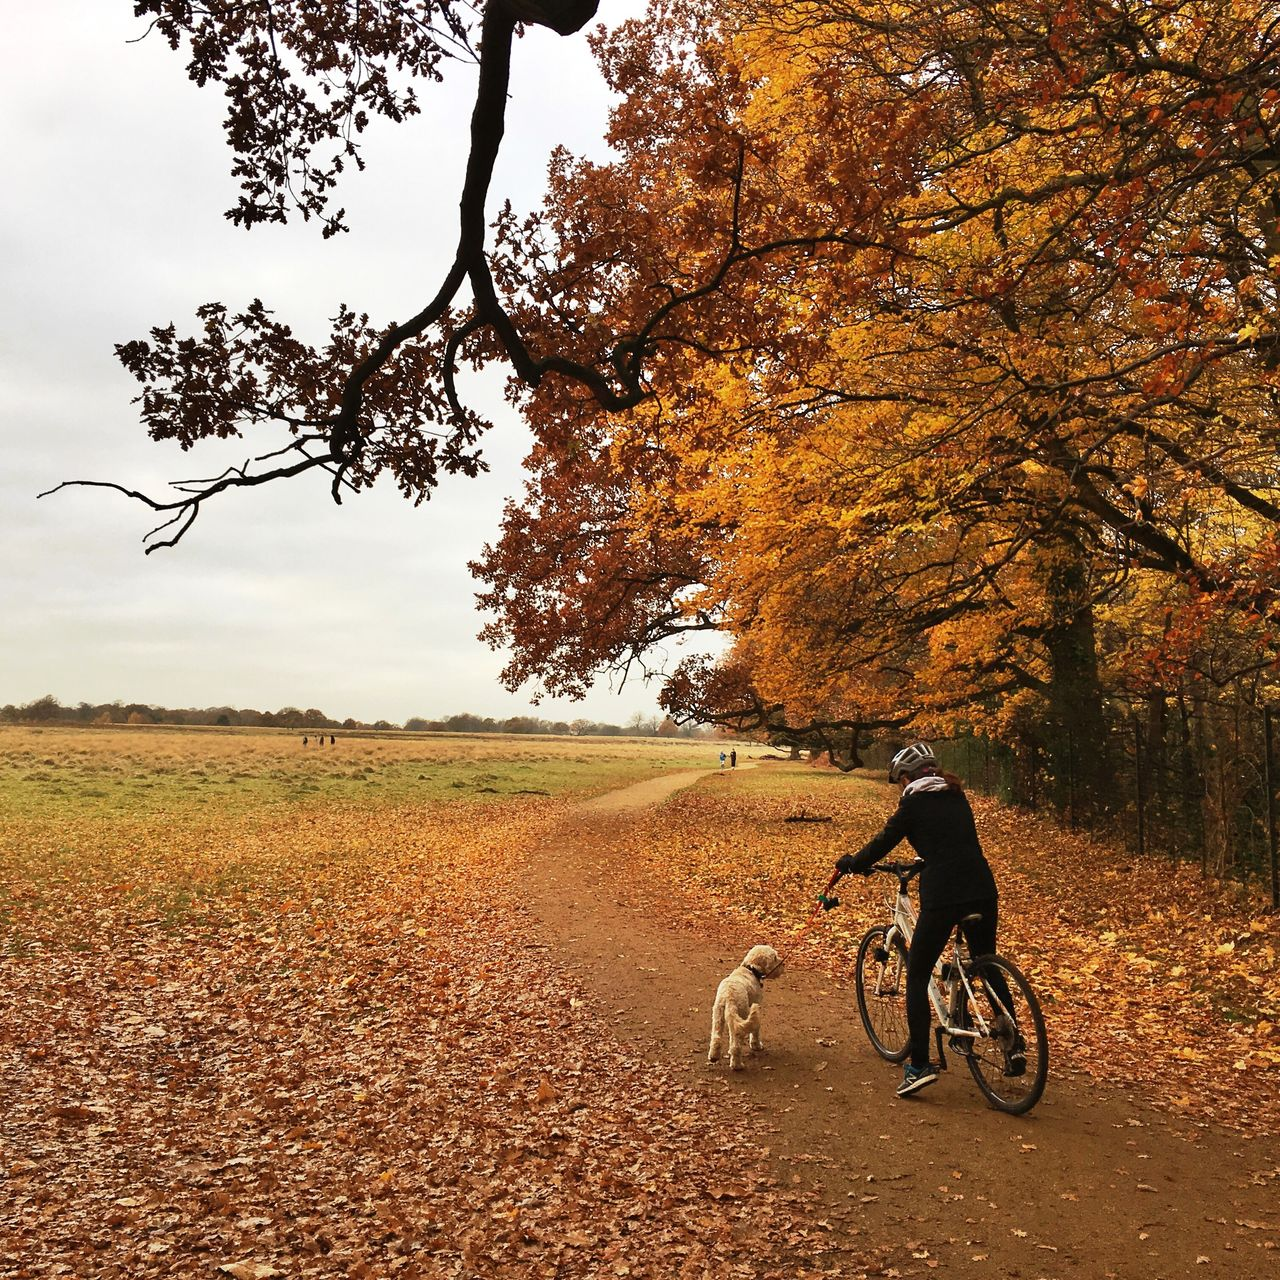 tree, dog, autumn, pets, one animal, animal themes, domestic animals, nature, mammal, full length, leaf, change, outdoors, day, pet leash, real people, one person, dog lead, beauty in nature, scenics, growth, sky, people